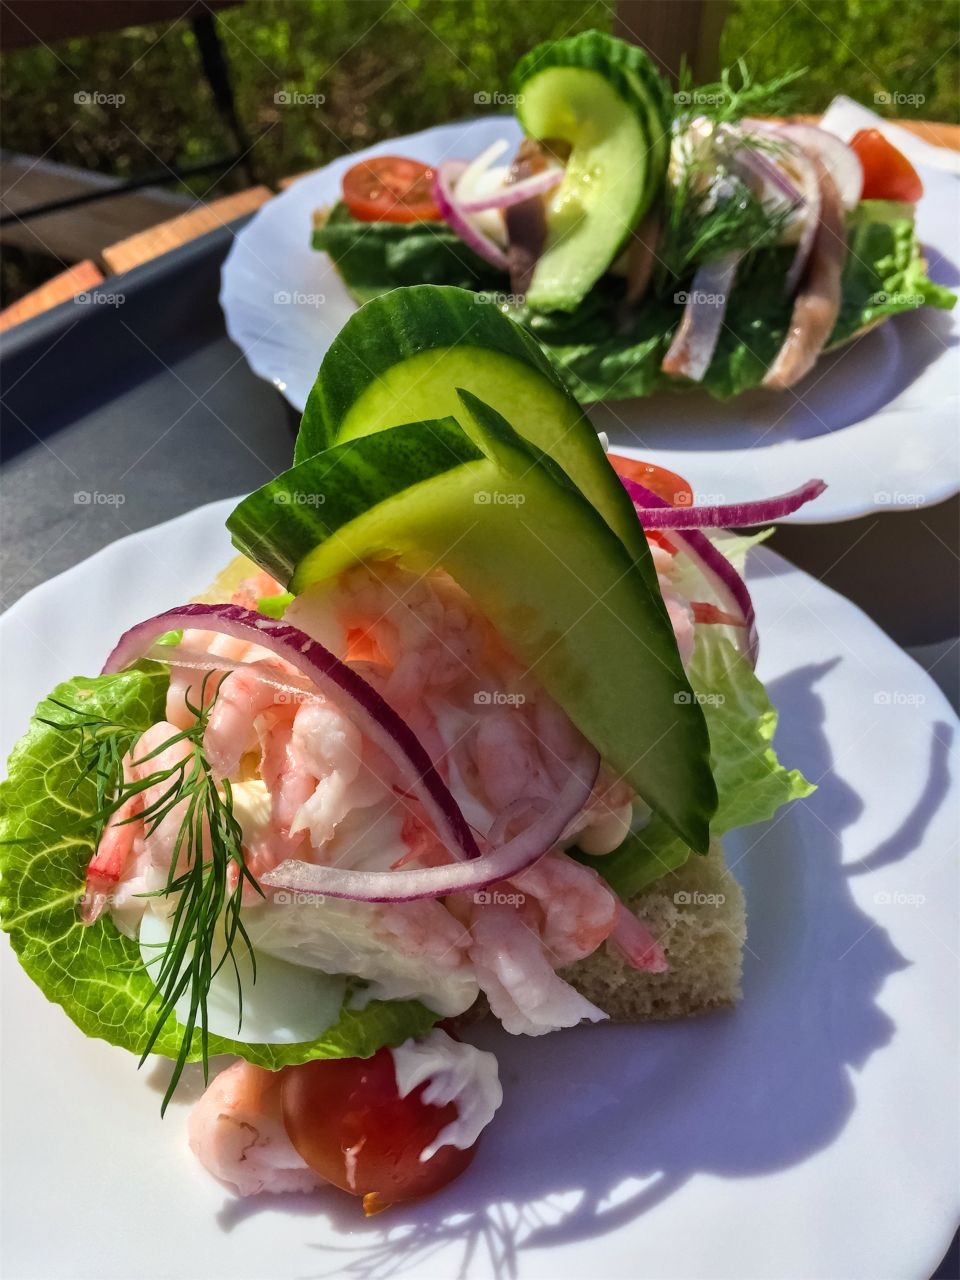 Sandwich with peeled shrimps and vegetables in foreground on white plate outdoors in garden cafe.